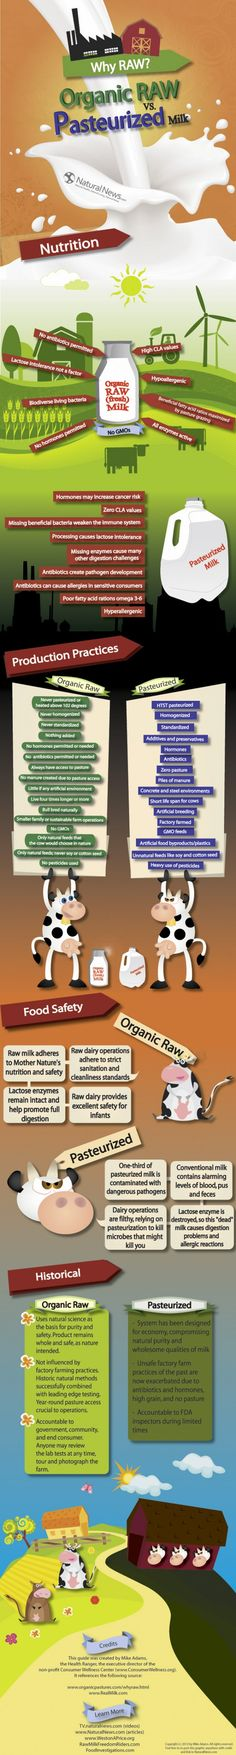 For Those Who Are Lactose Intolerant, There is Raw Dairy -- Health Ranger releases raw milk infographic comparing fresh raw dairy to pasteurized homogenized dead milk. **We stand behind our use of raw milk! Health And Nutrition, Health And Wellness, Milk Nutrition, Health Exercise, Fitness Nutrition, Autogenic Training, Salud Natural, Thing 1, Wildlife Conservation